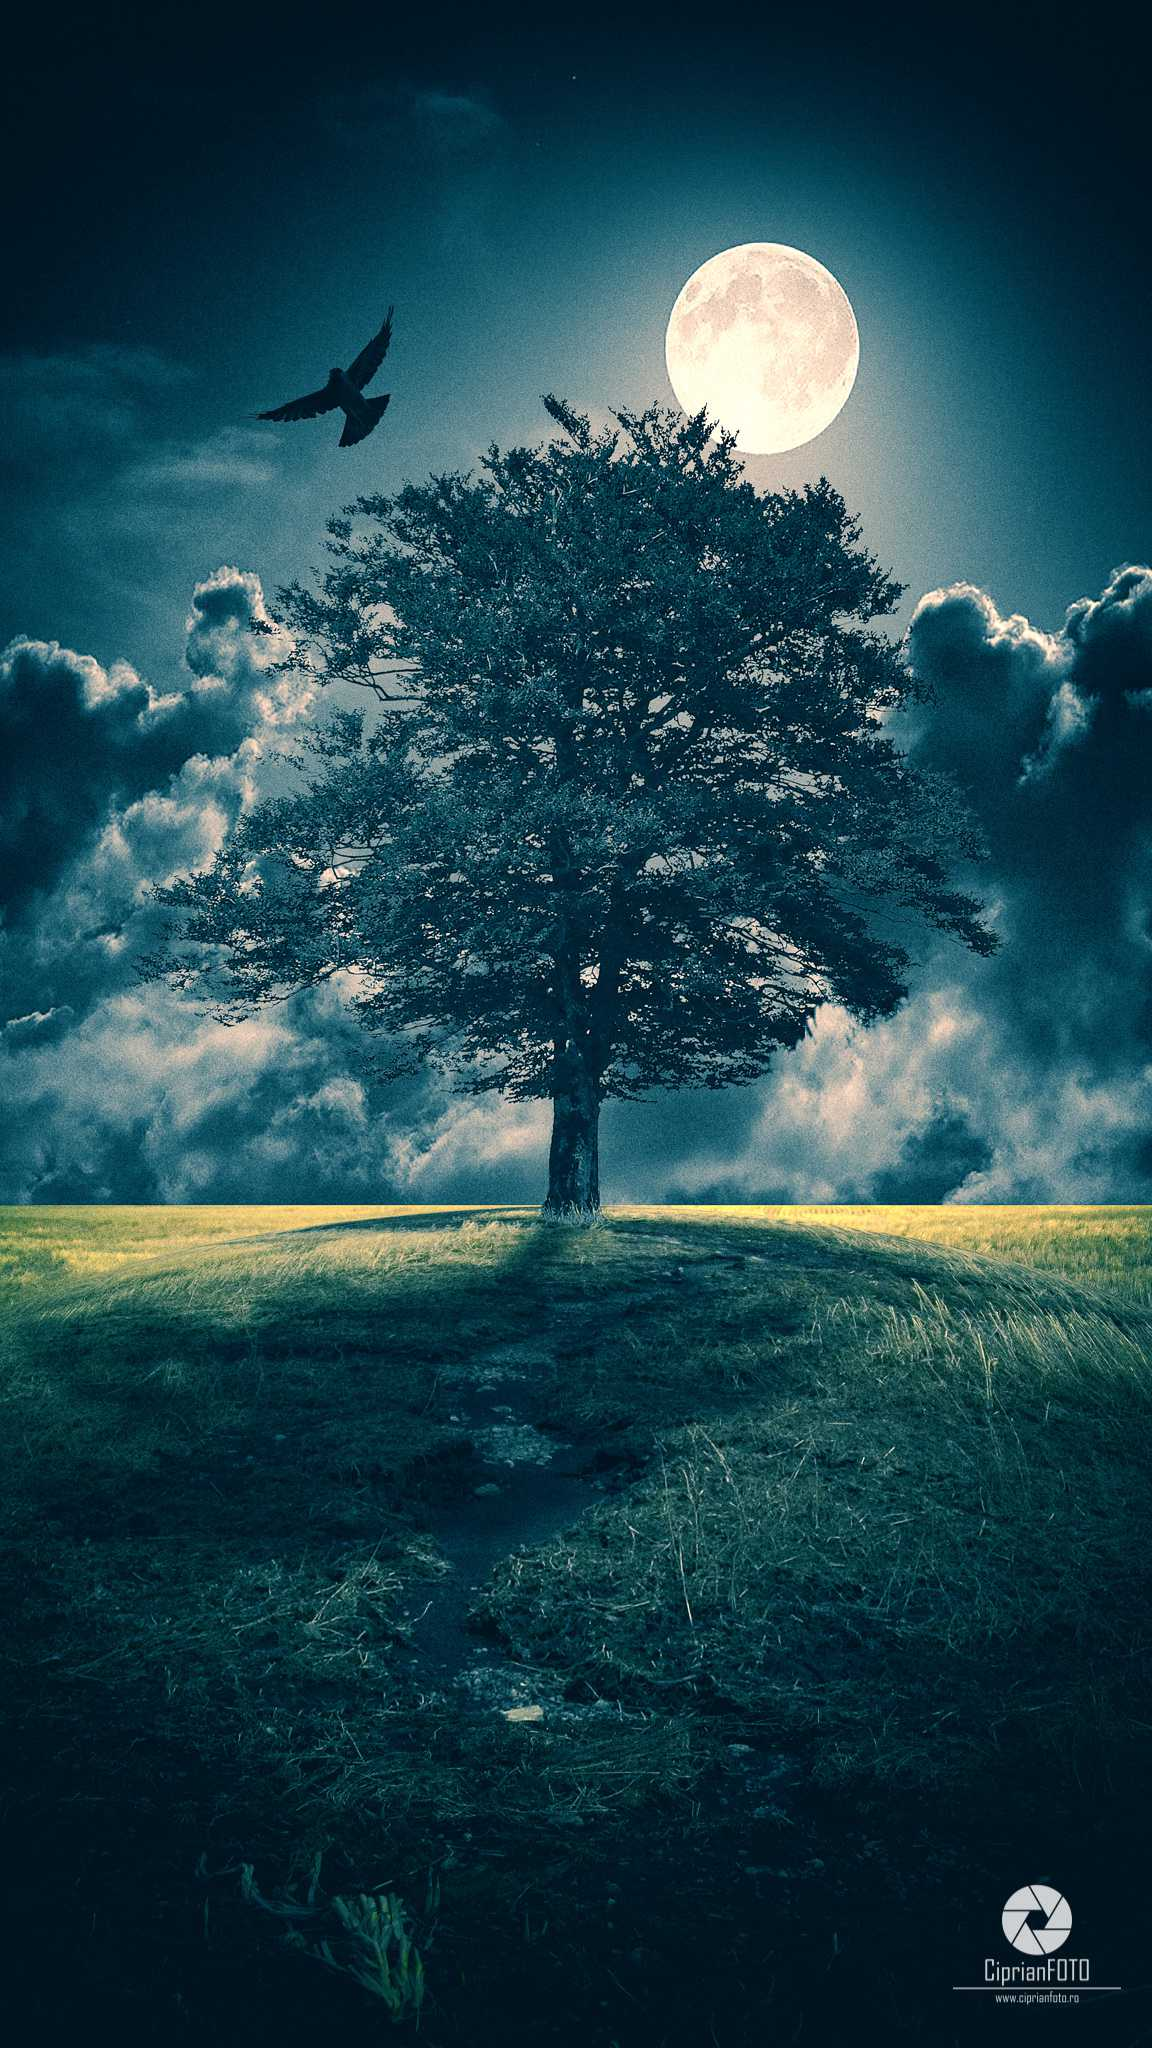 The Tree, Photoshop Manipulation Tutorial, CiprianFOTO